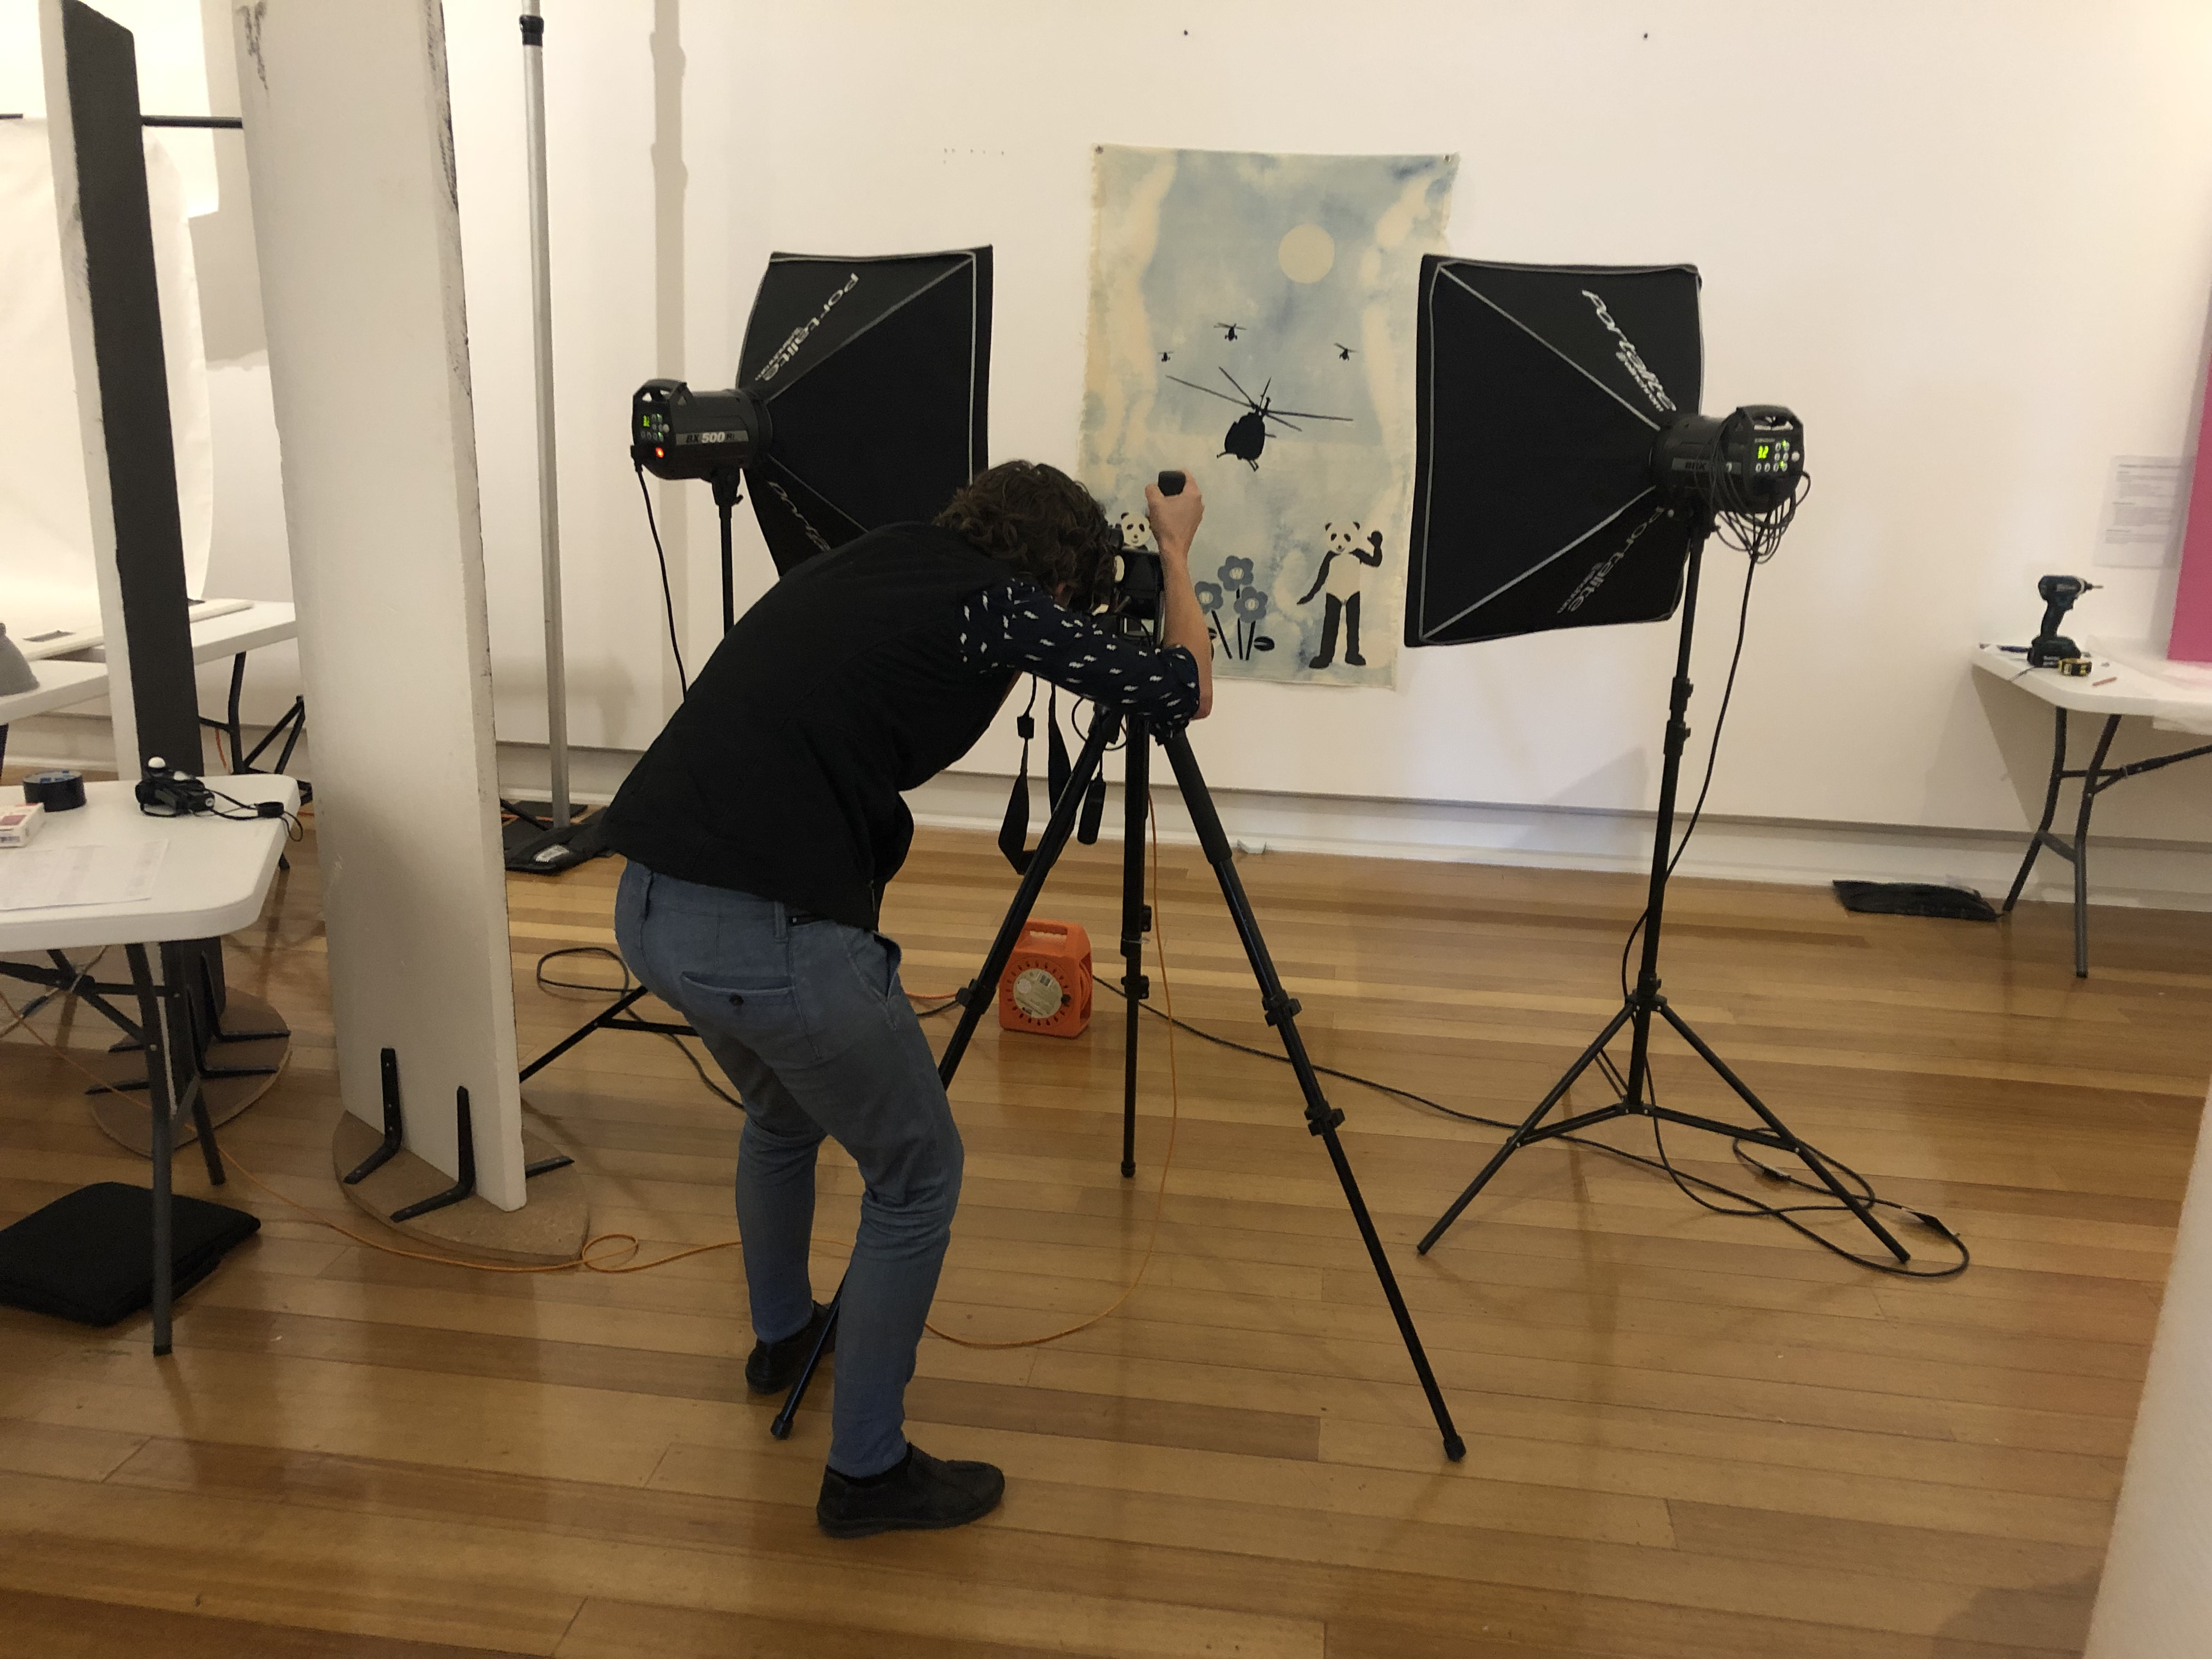 Ararat Gallery's collection to be digitised under pilot project